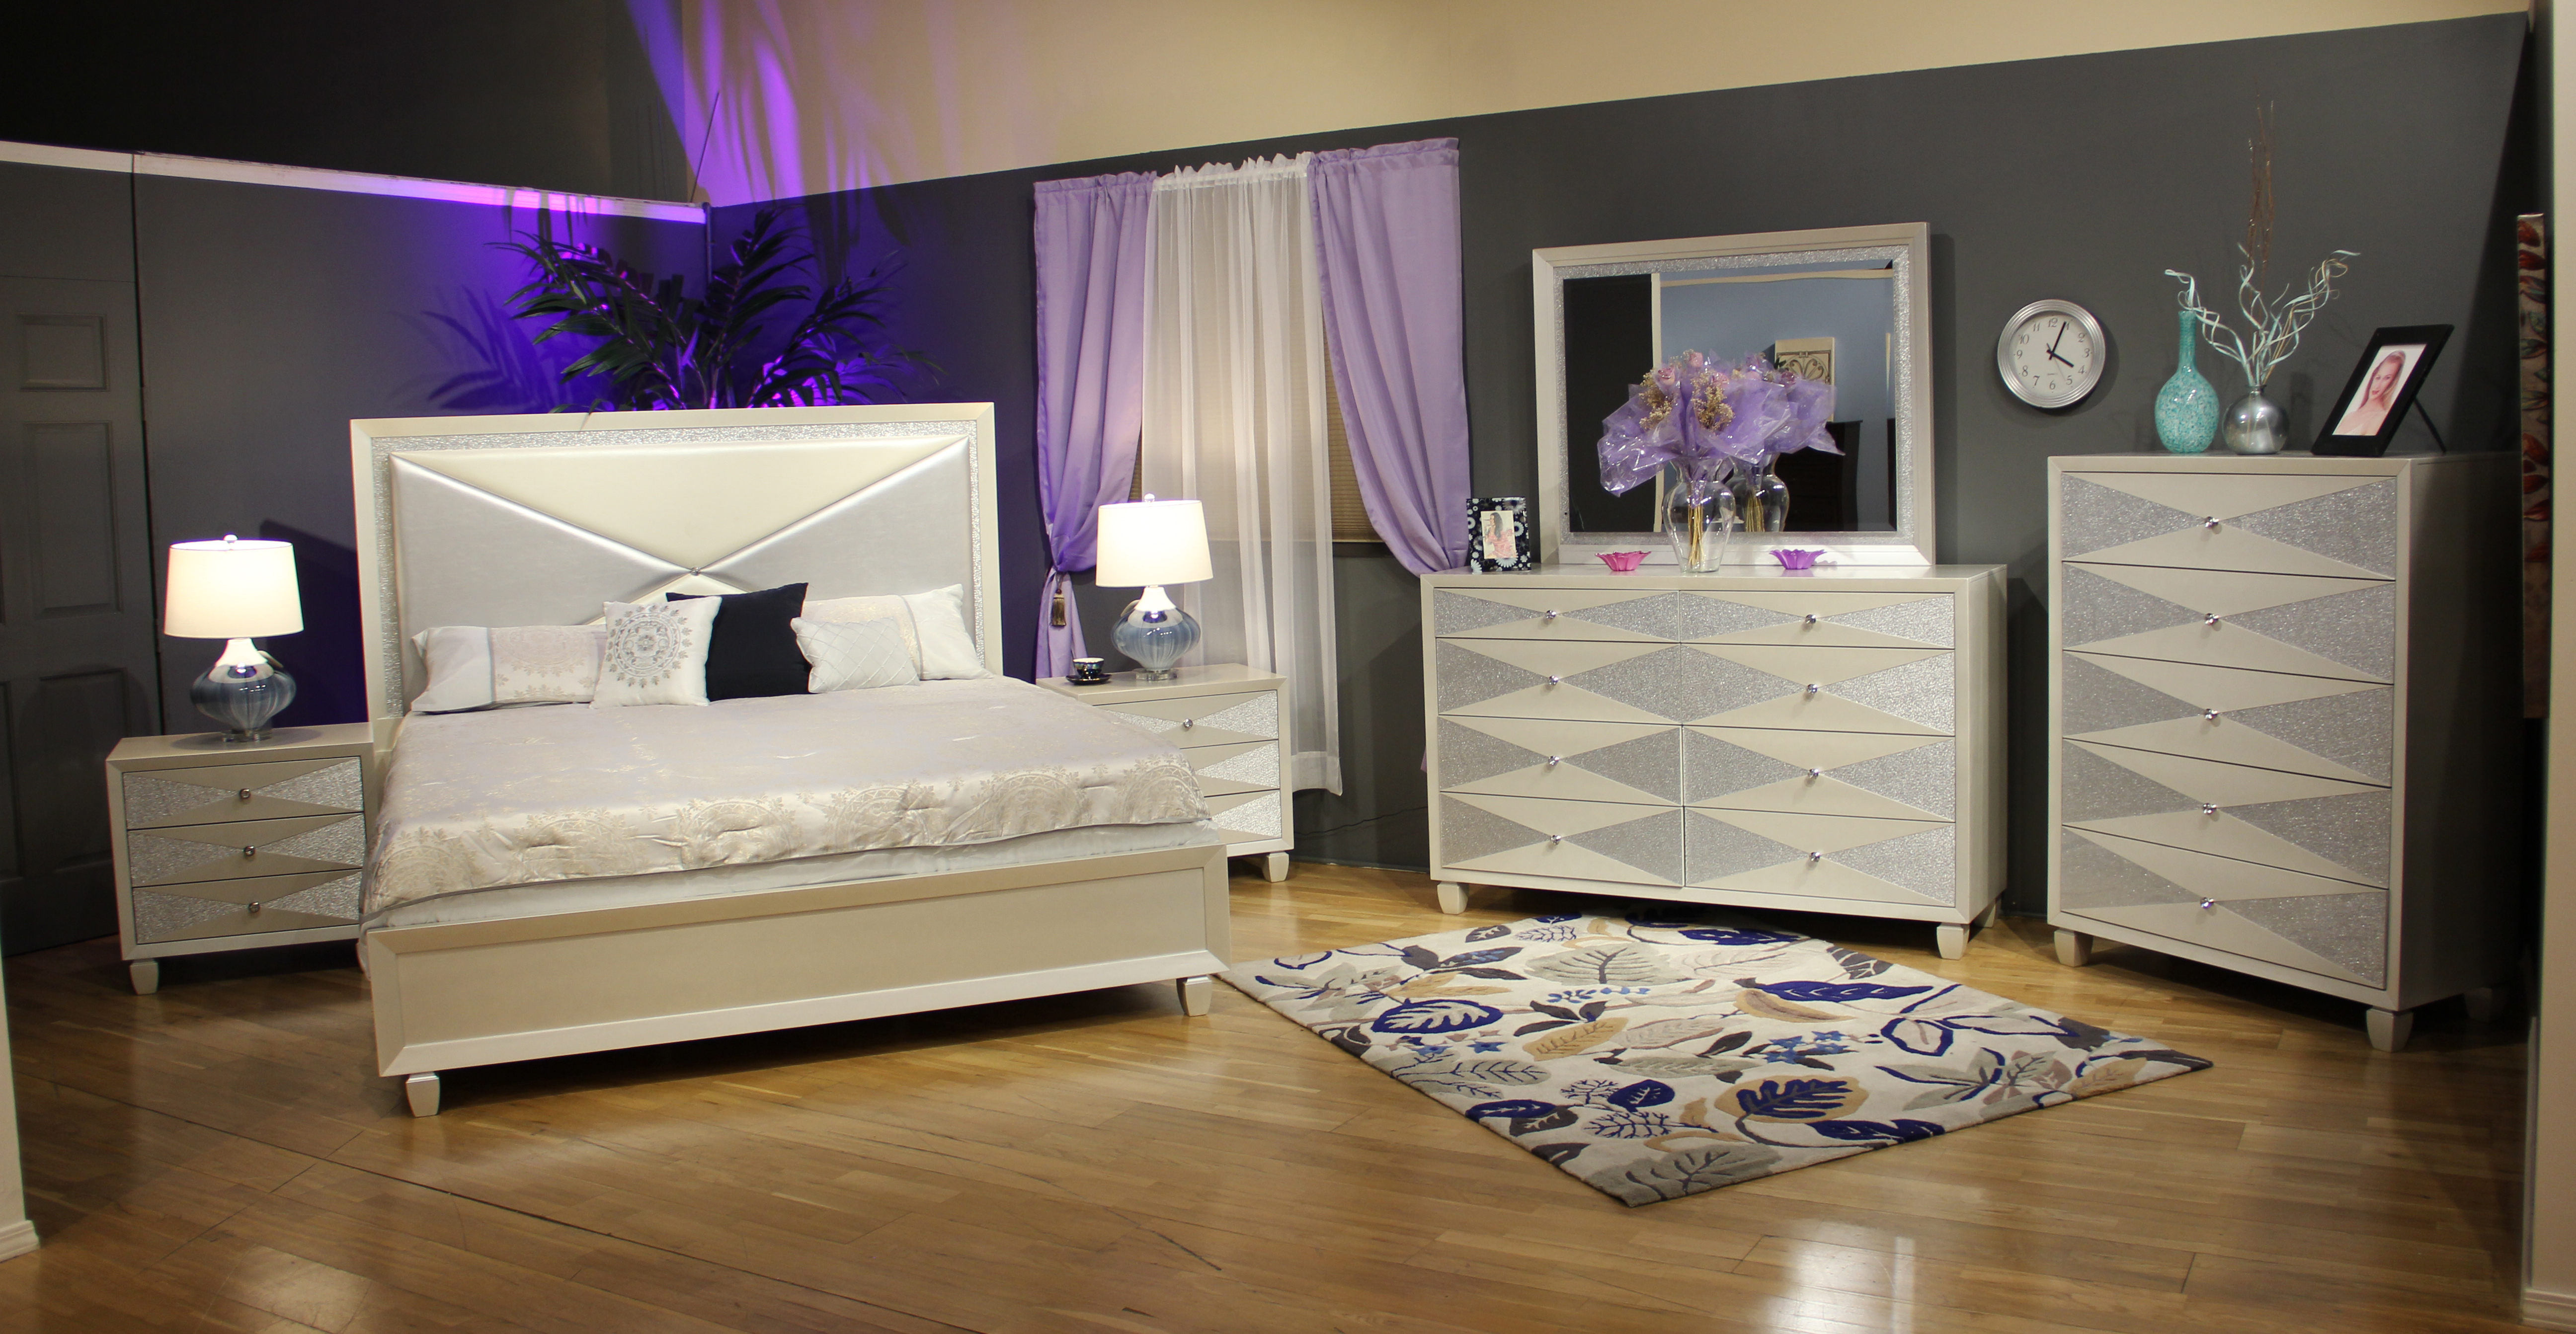 Harlequin Bedroom Set by New Classic at Beds N Stuff